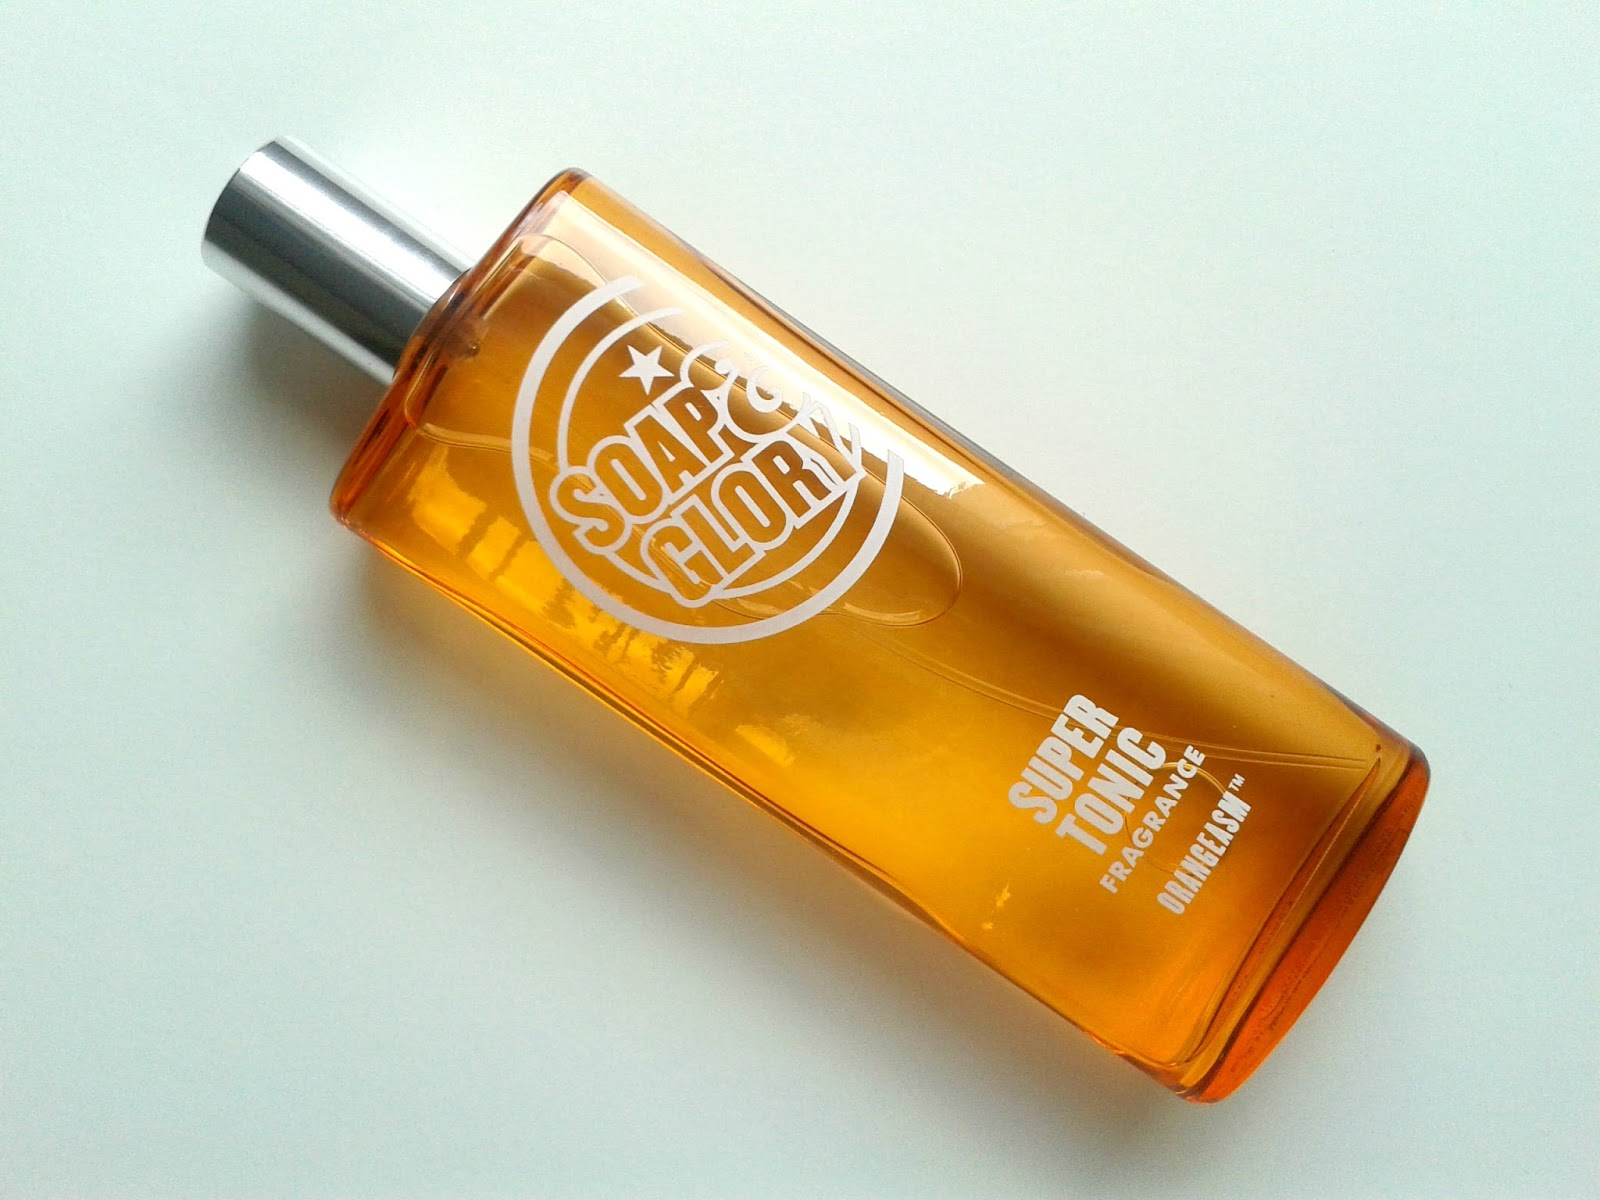 Ellis Tuesday's Summer Sun-days: Fragrances Soap & Glory Orangeasm Super Tonic Fragrance Beauty Review